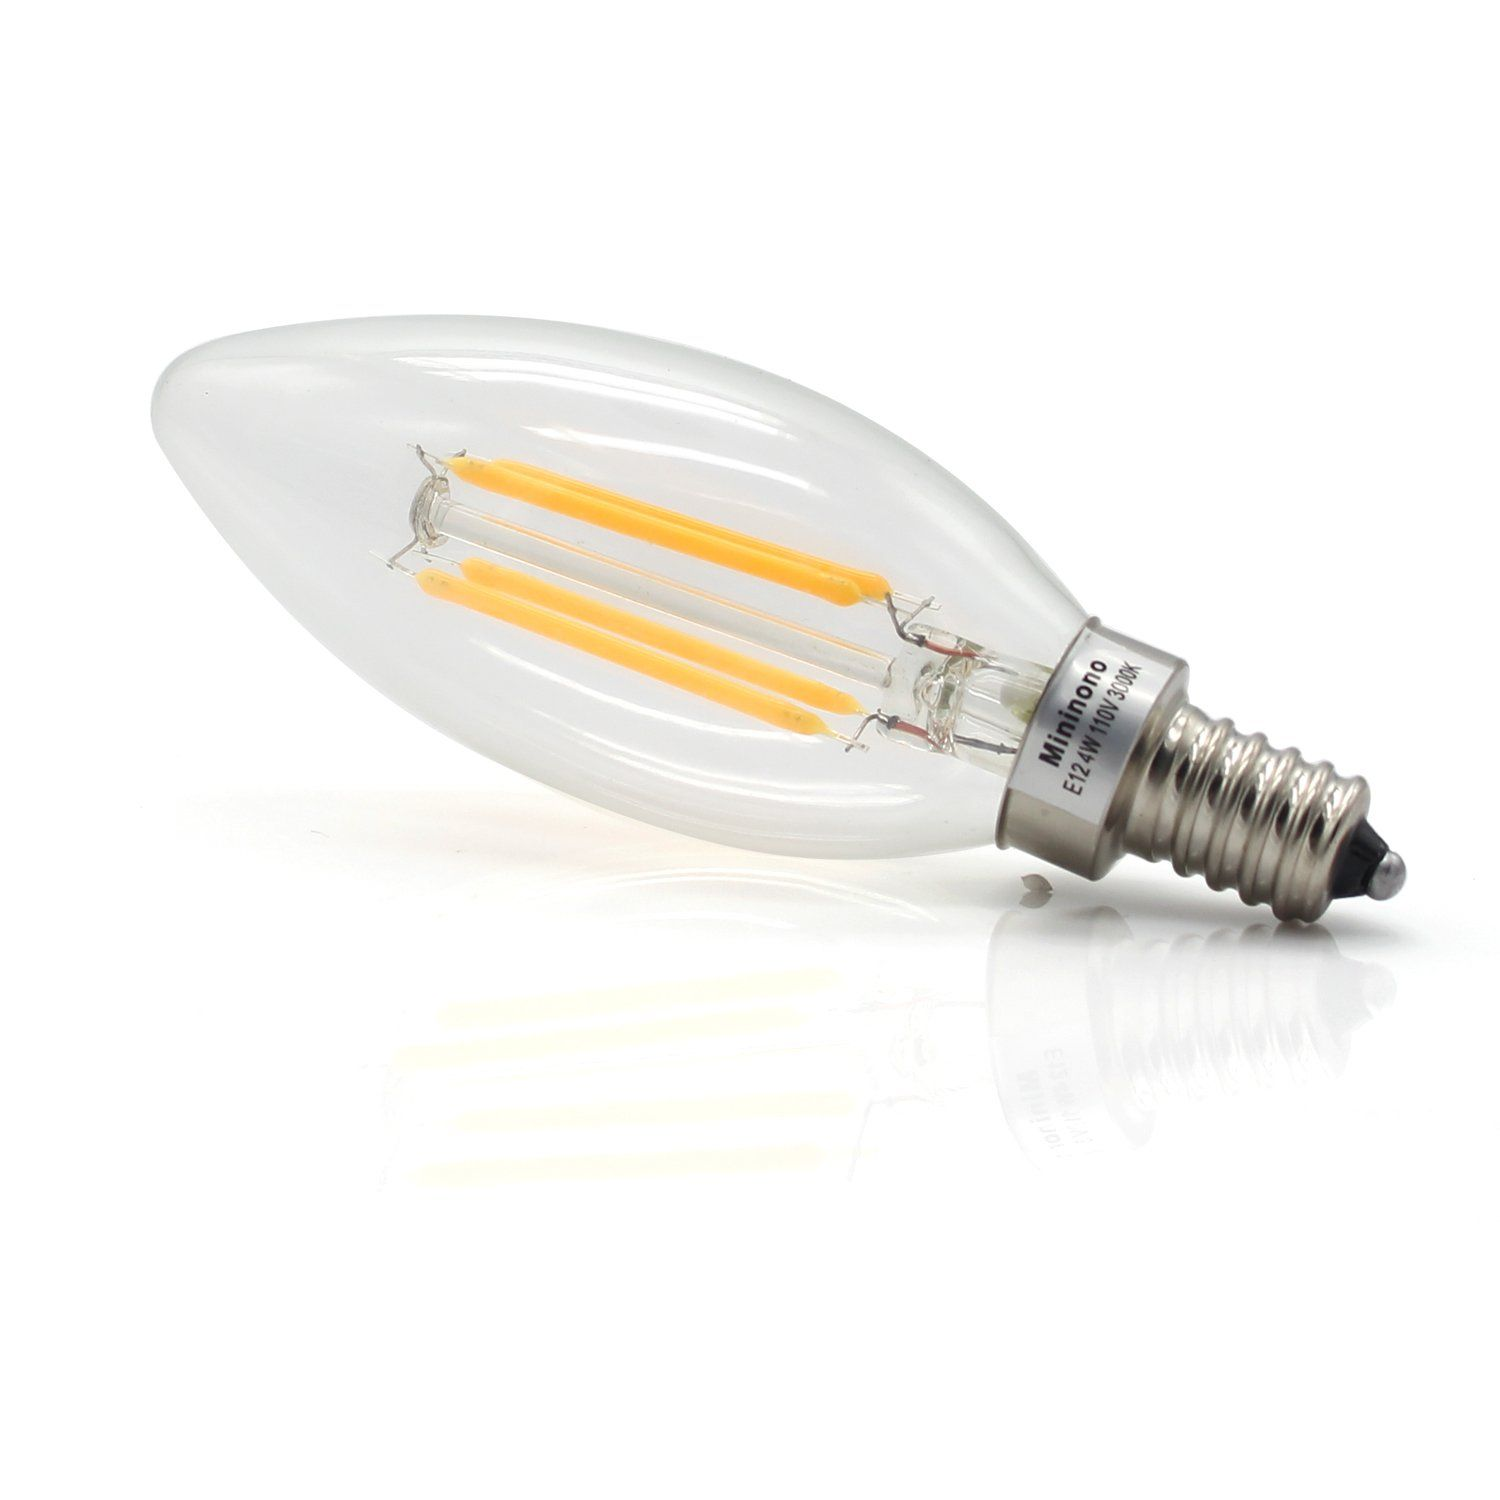 Mininono Led Filament Bulbs E12 Candelabra Base Dimmable 4w 40w Equivalent E12 C35 Candle Edison Light Bulb 2700k W Light Bulb Filament Bulb Edison Light Bulbs